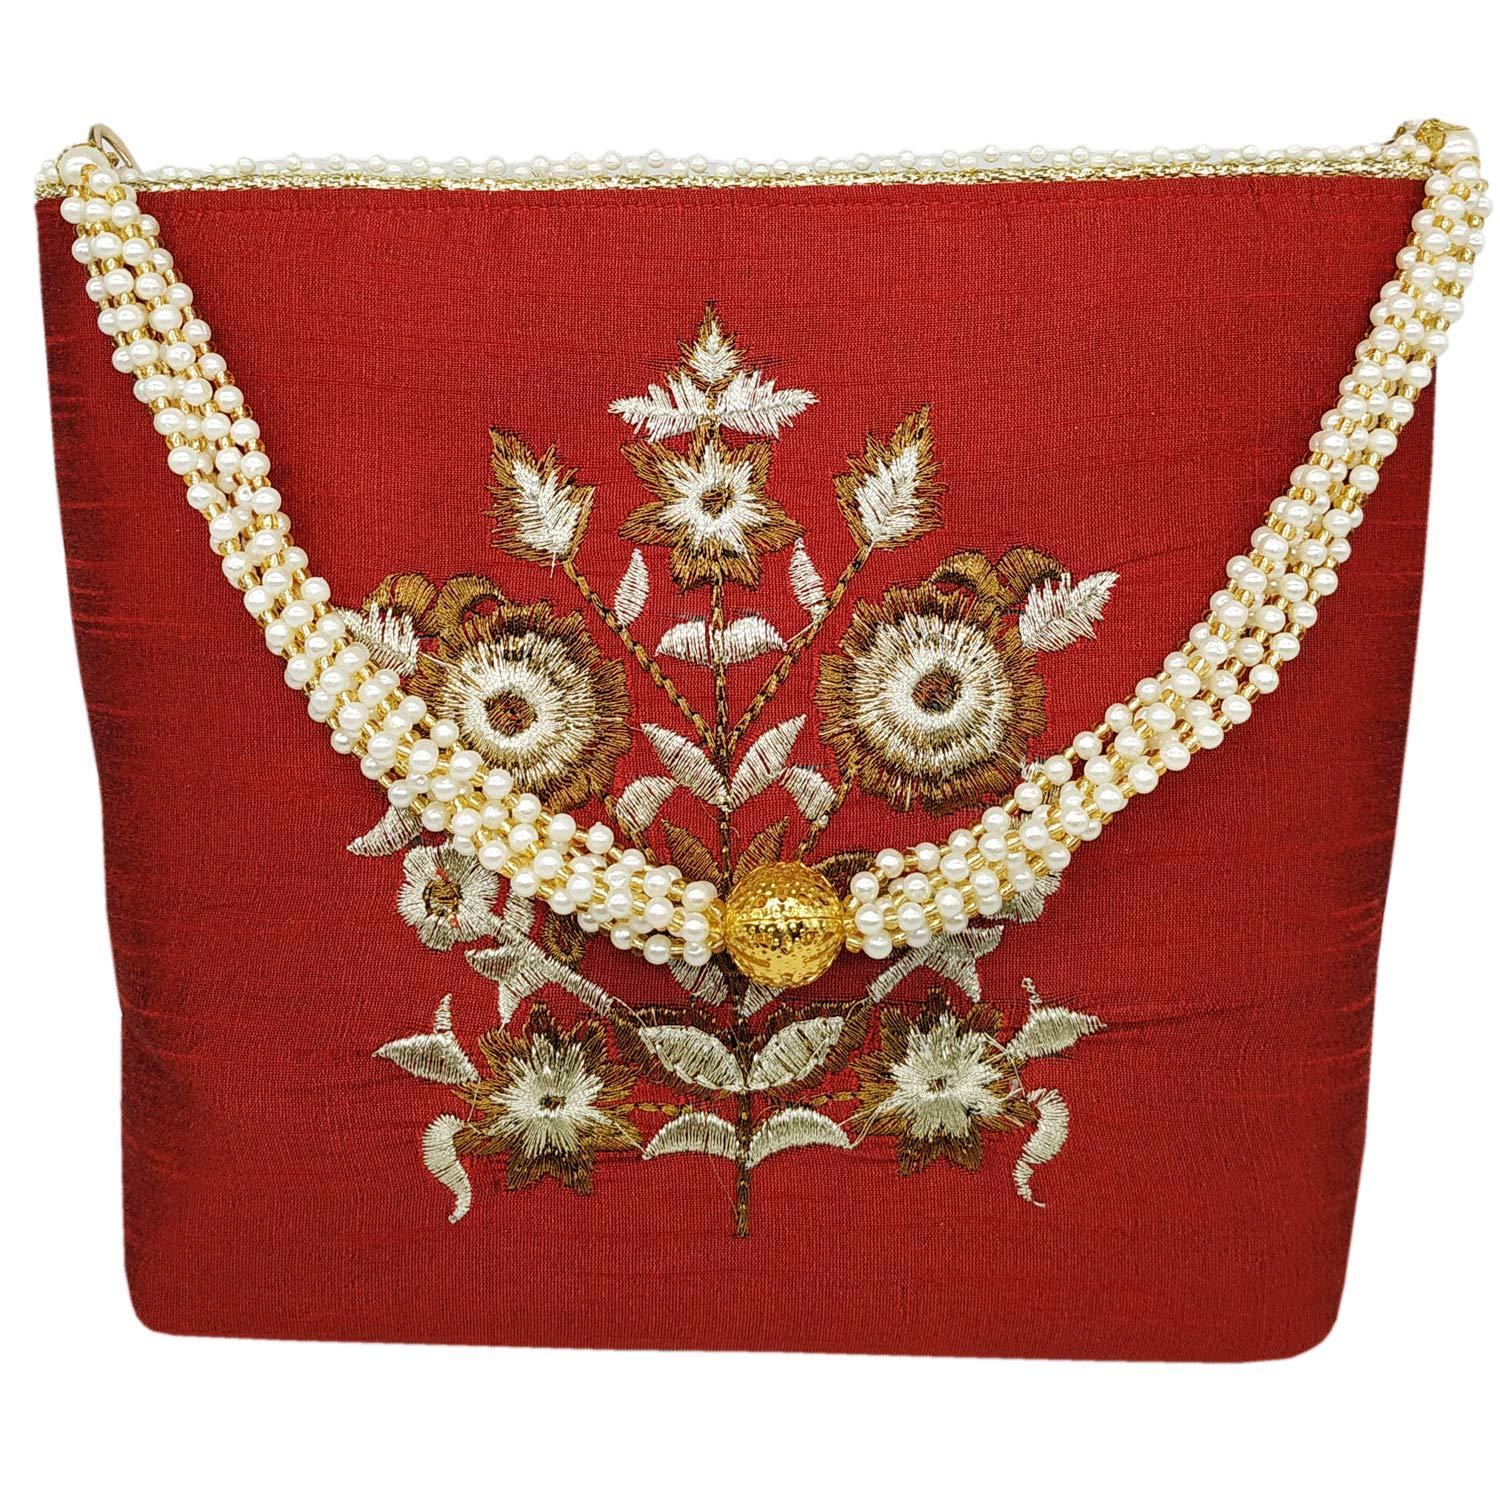 Raw Silk Girls Sling Bag Ethnic Clutch - Bagaholics Gift